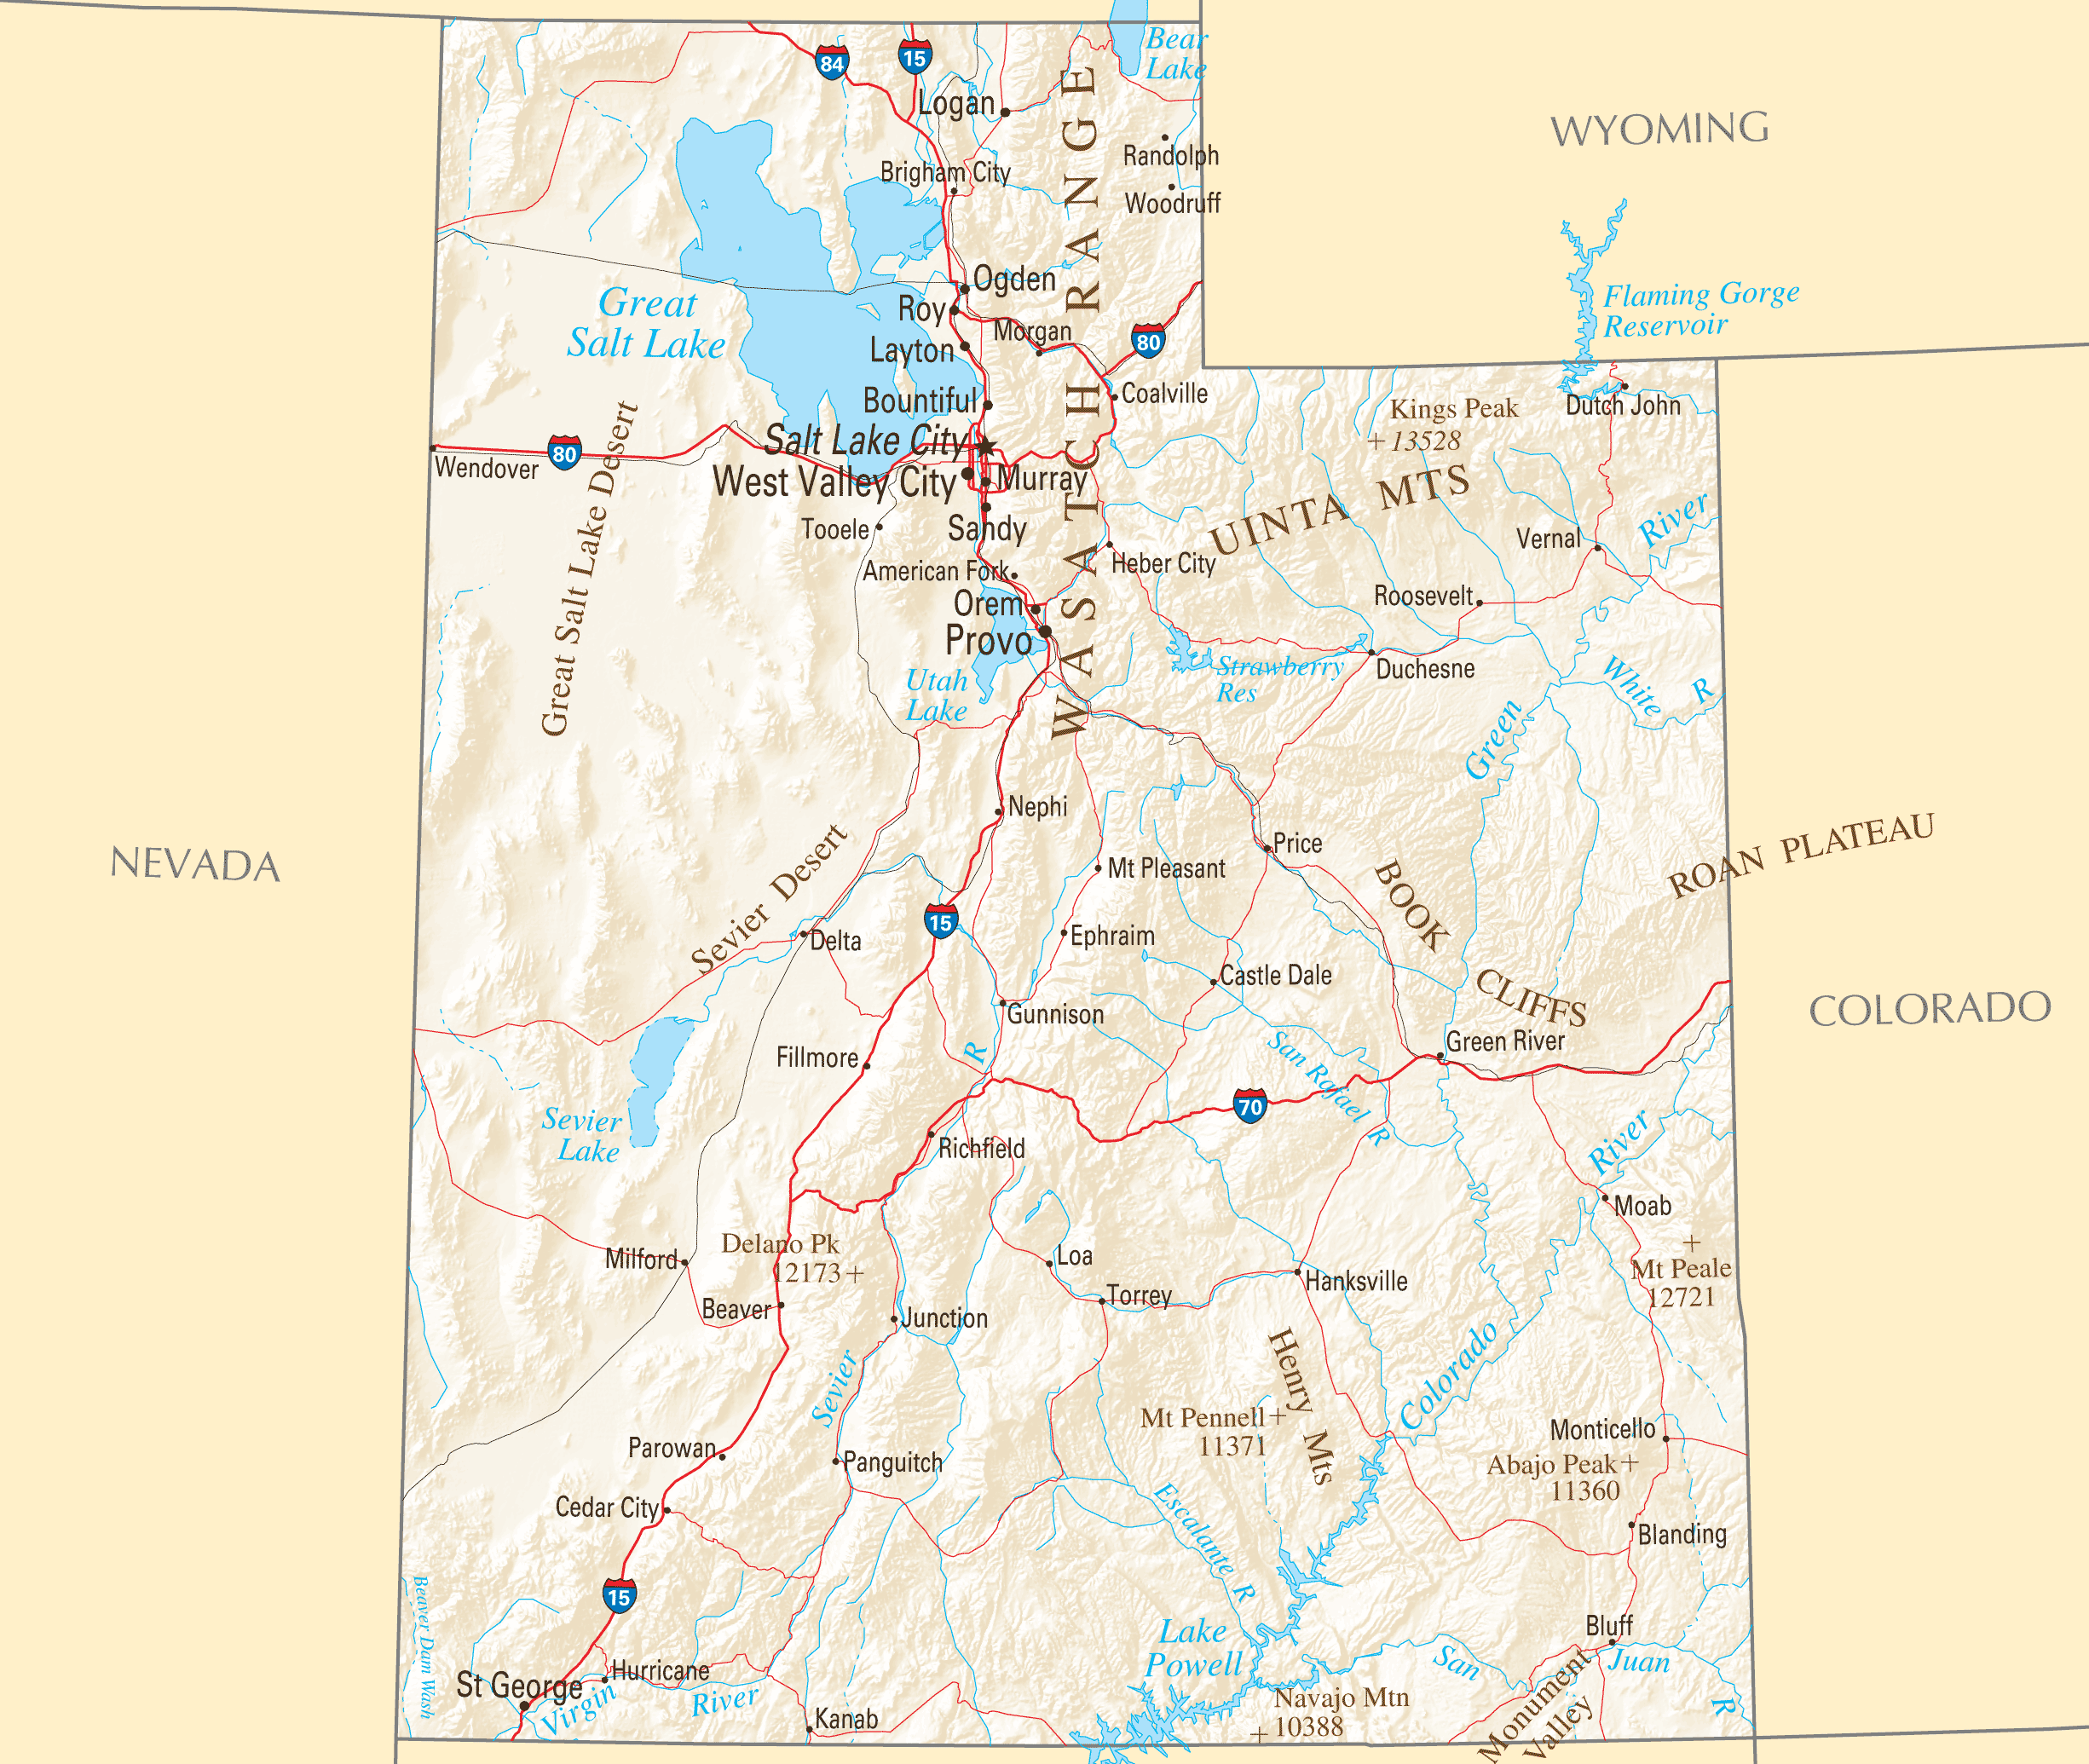 utah reference map • mapsofnet - click on the utah reference map